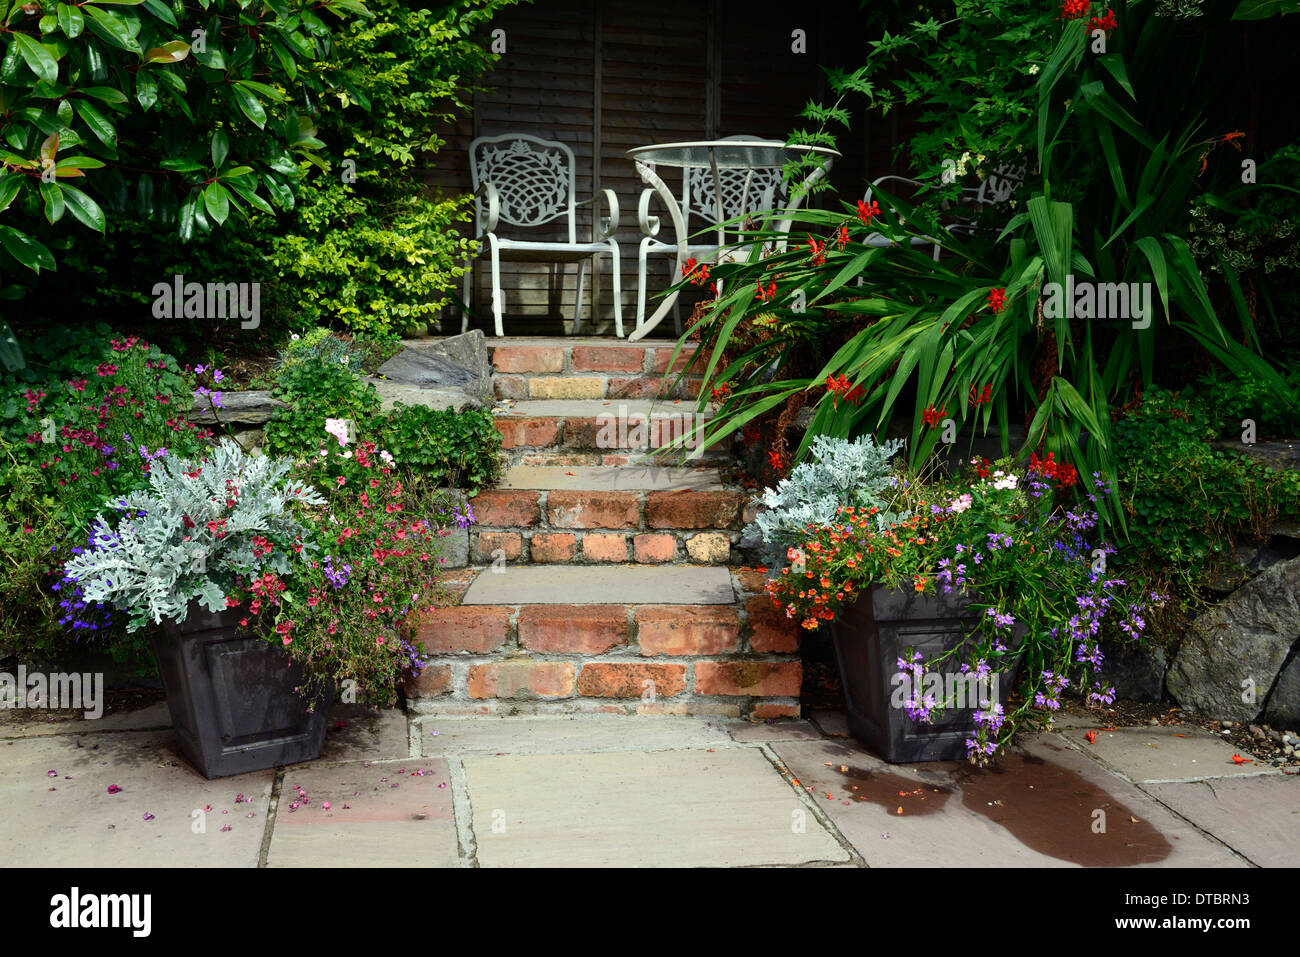 Raised Patio Seating Area Red Brick Steps Container Container Gardening  White Wrought Iron Seat Seats Mixed Planting Scheme